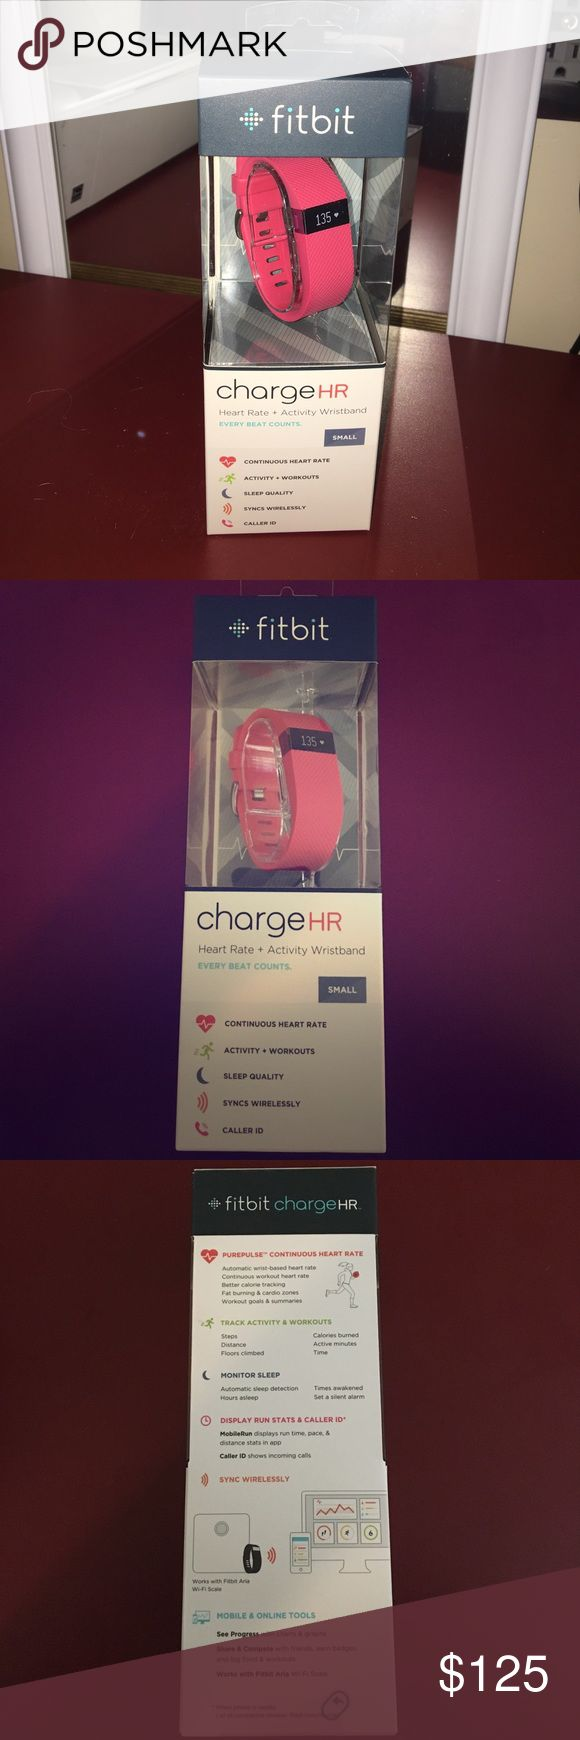 Small Pink FitBit Charge HR BRAND NEW IN BOX! Pink Fitbit Charge HR. A high-performance wristband with continuous heart rate and activity tracking right on your wrist. Track steps, distance, floors climbed and sleep quality and more. Stay connected with Caller ID. Charge HR wirelessly syncs to your smartphone and computer.  PurePulse Heart Rate. Activity Tracking. Auto Sleep + Silent Alarm. Exercise Tracking. Caller ID. OLED Display. Water Resistant Wireless Syncing fitbit Other